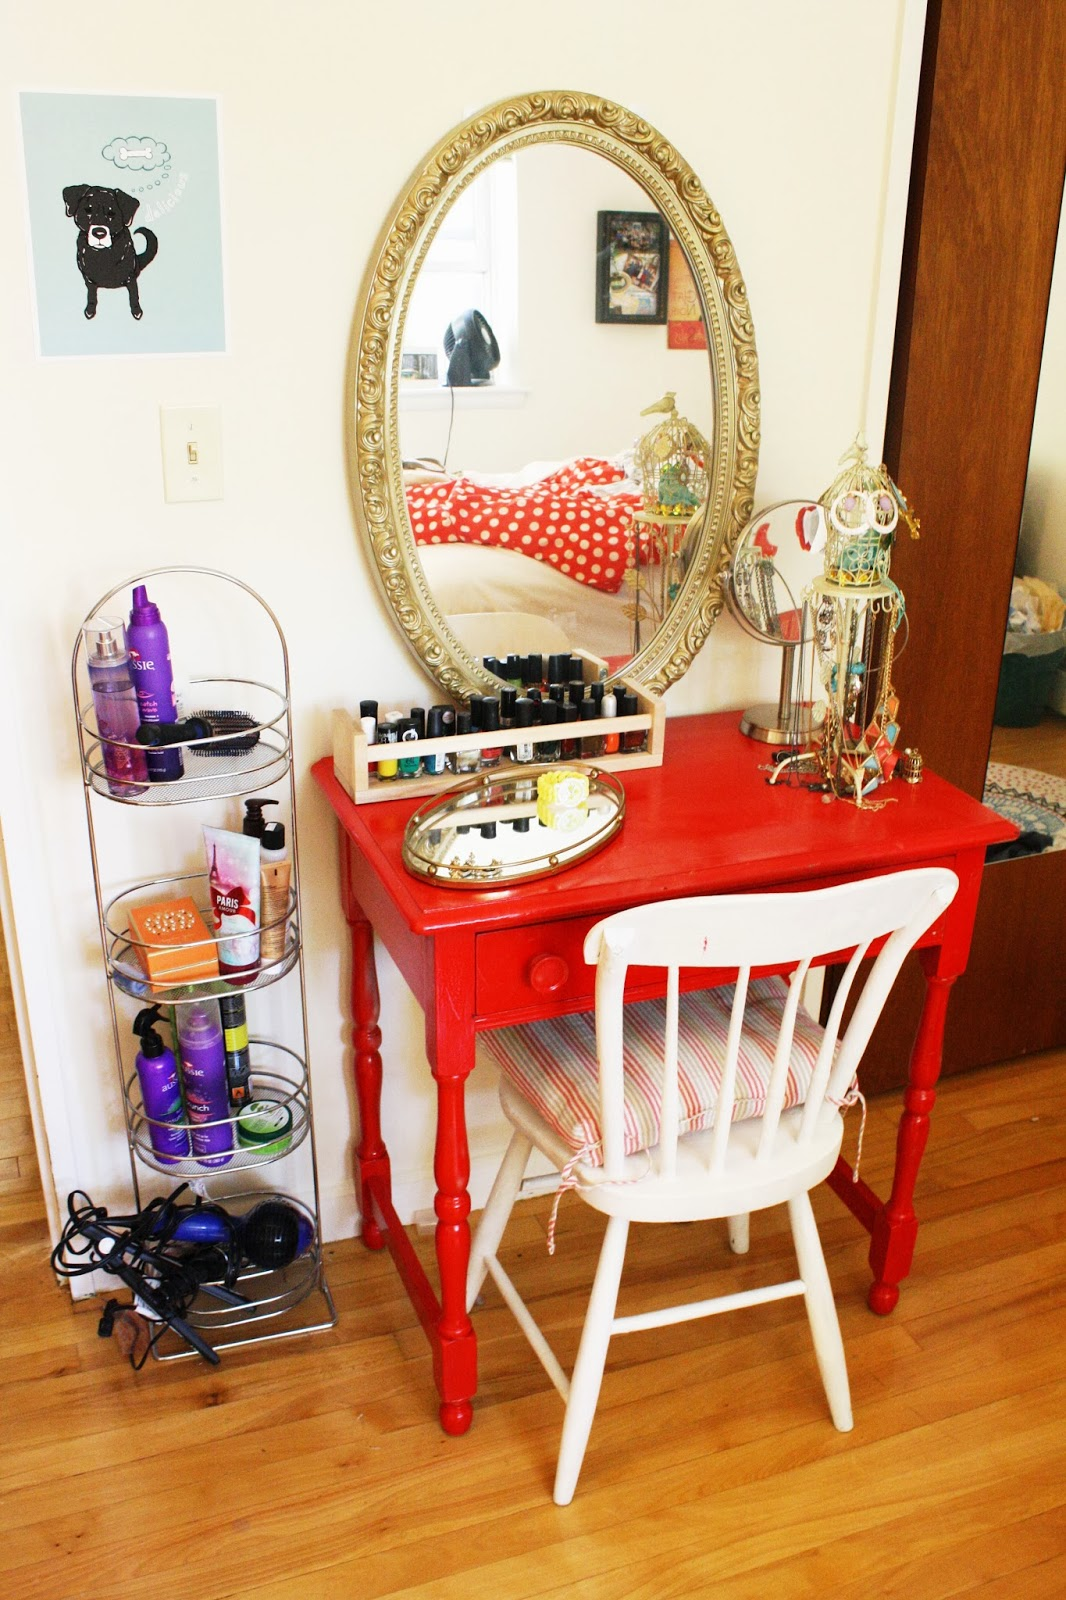 Apartment-Sized Vanity